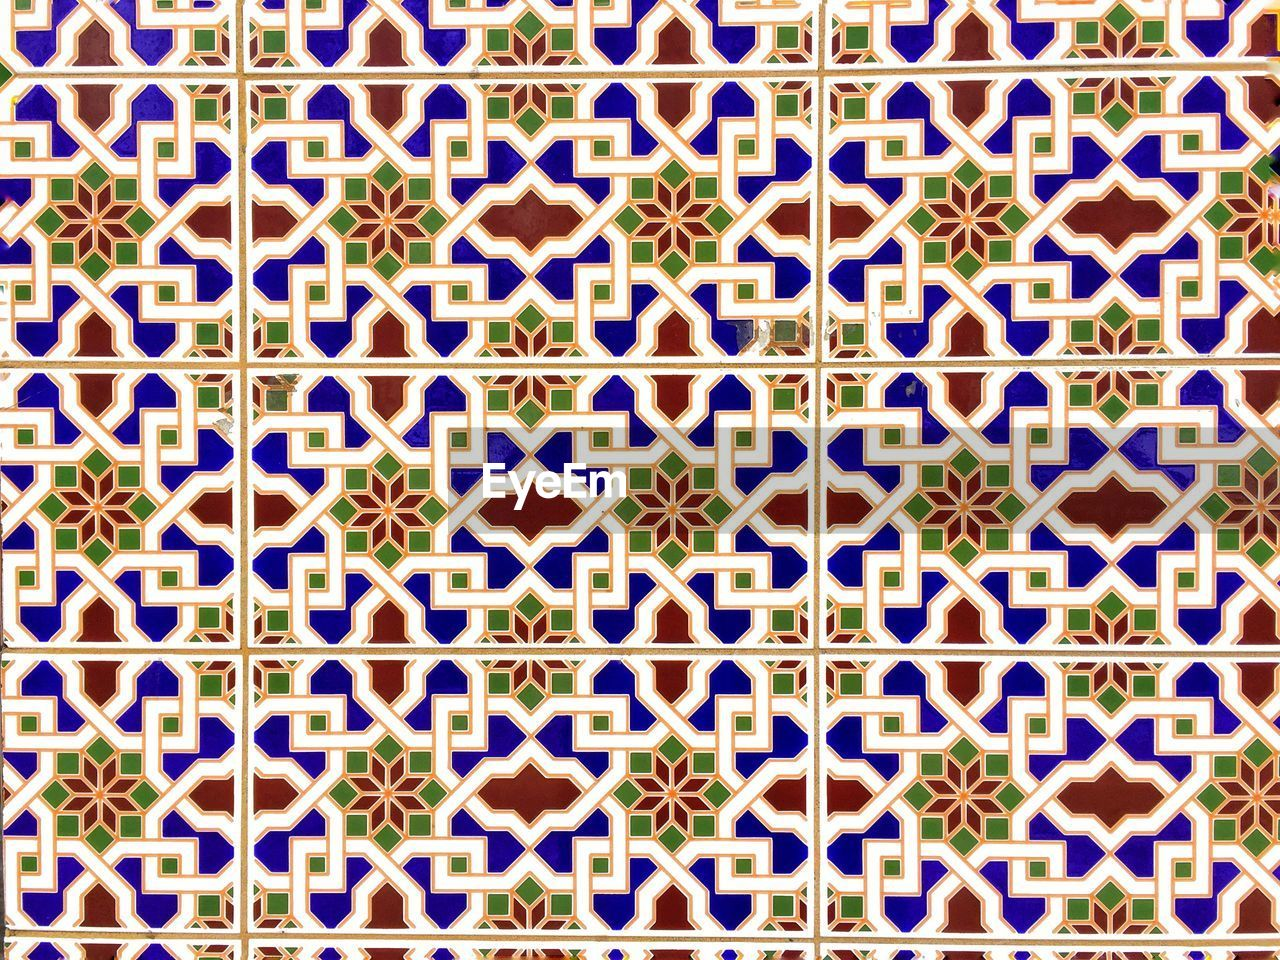 full frame, backgrounds, pattern, multi colored, design, no people, shape, abstract, large group of objects, tile, square shape, in a row, indoors, repetition, decoration, flooring, art and craft, textile, tiled floor, close-up, abstract backgrounds, purple, floral pattern